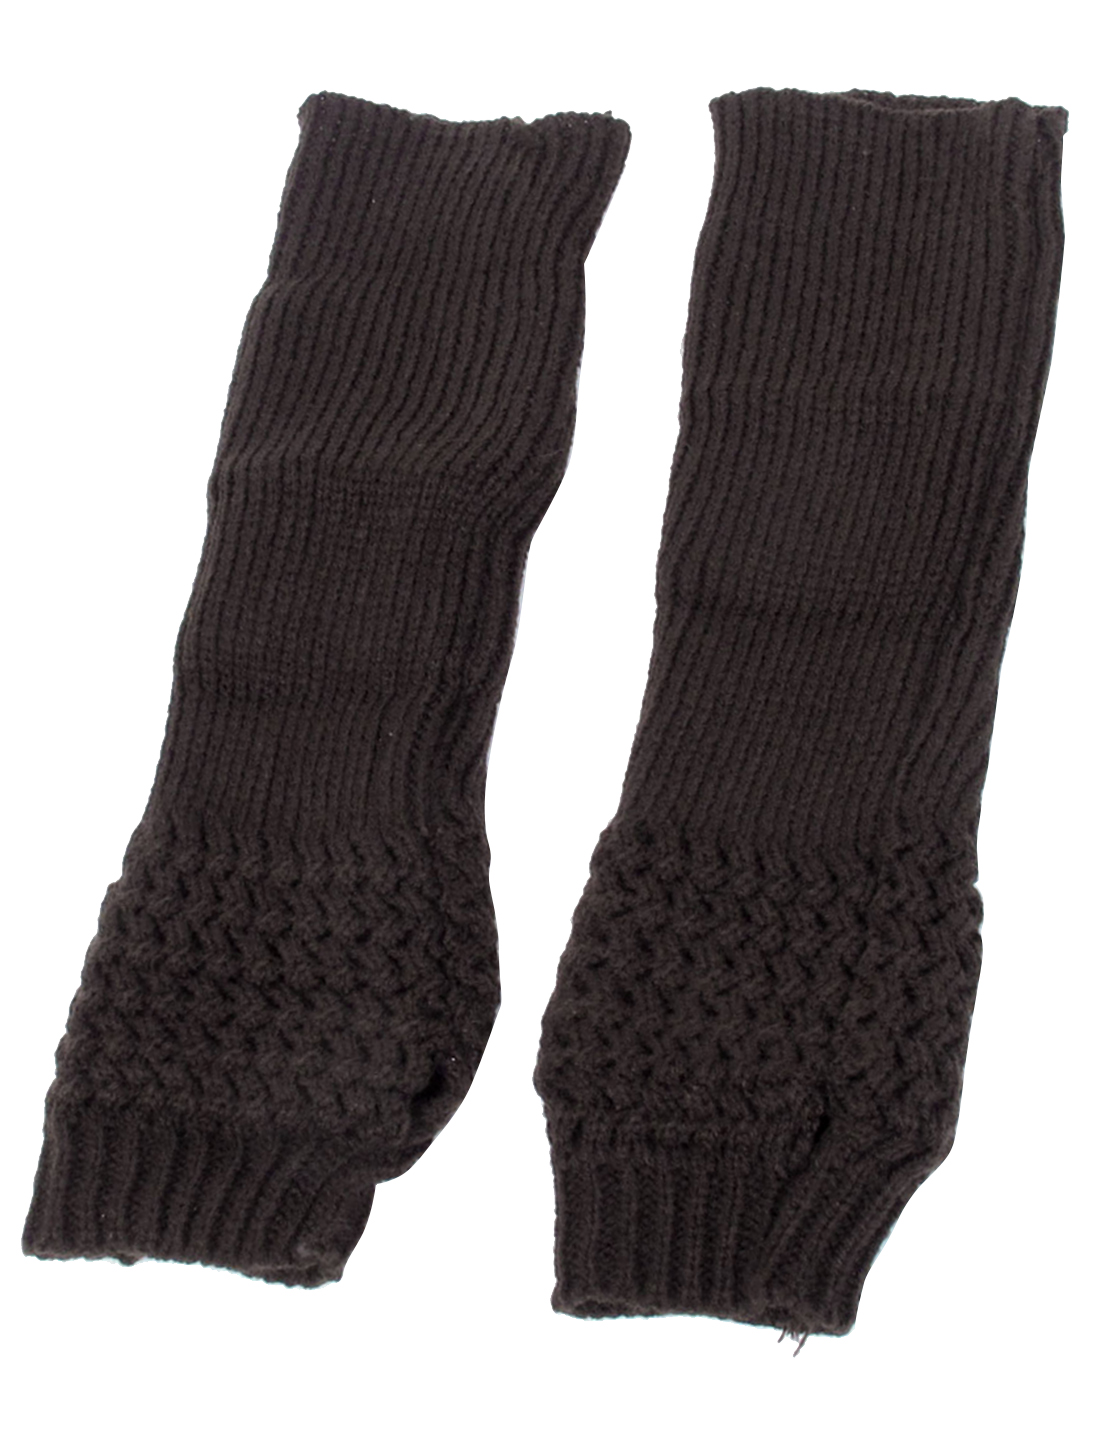 Woman Knitting Fingerless Long Gloves Arm Warmers Protective Brown Pair